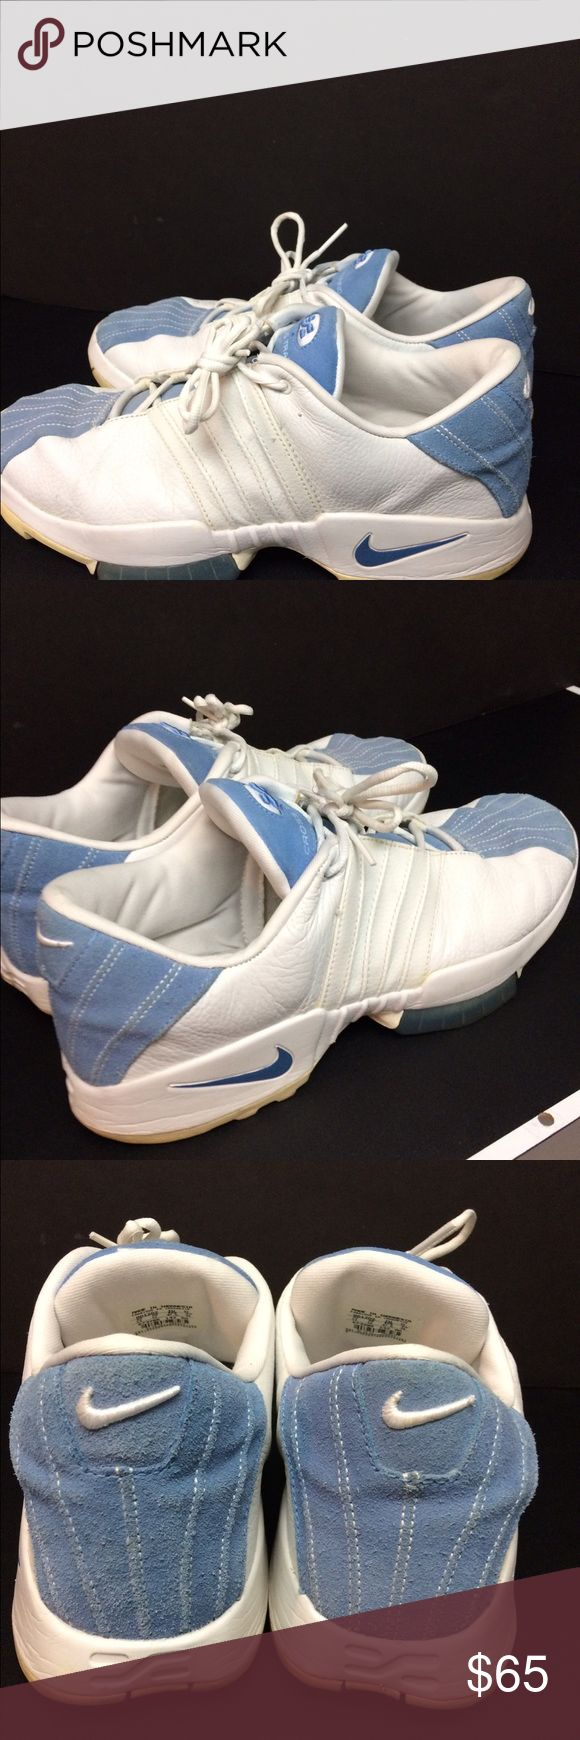 Air Cross Training Air Cross Training. men's white leather and light blue suede shoes. Nike Shoes Sneakers